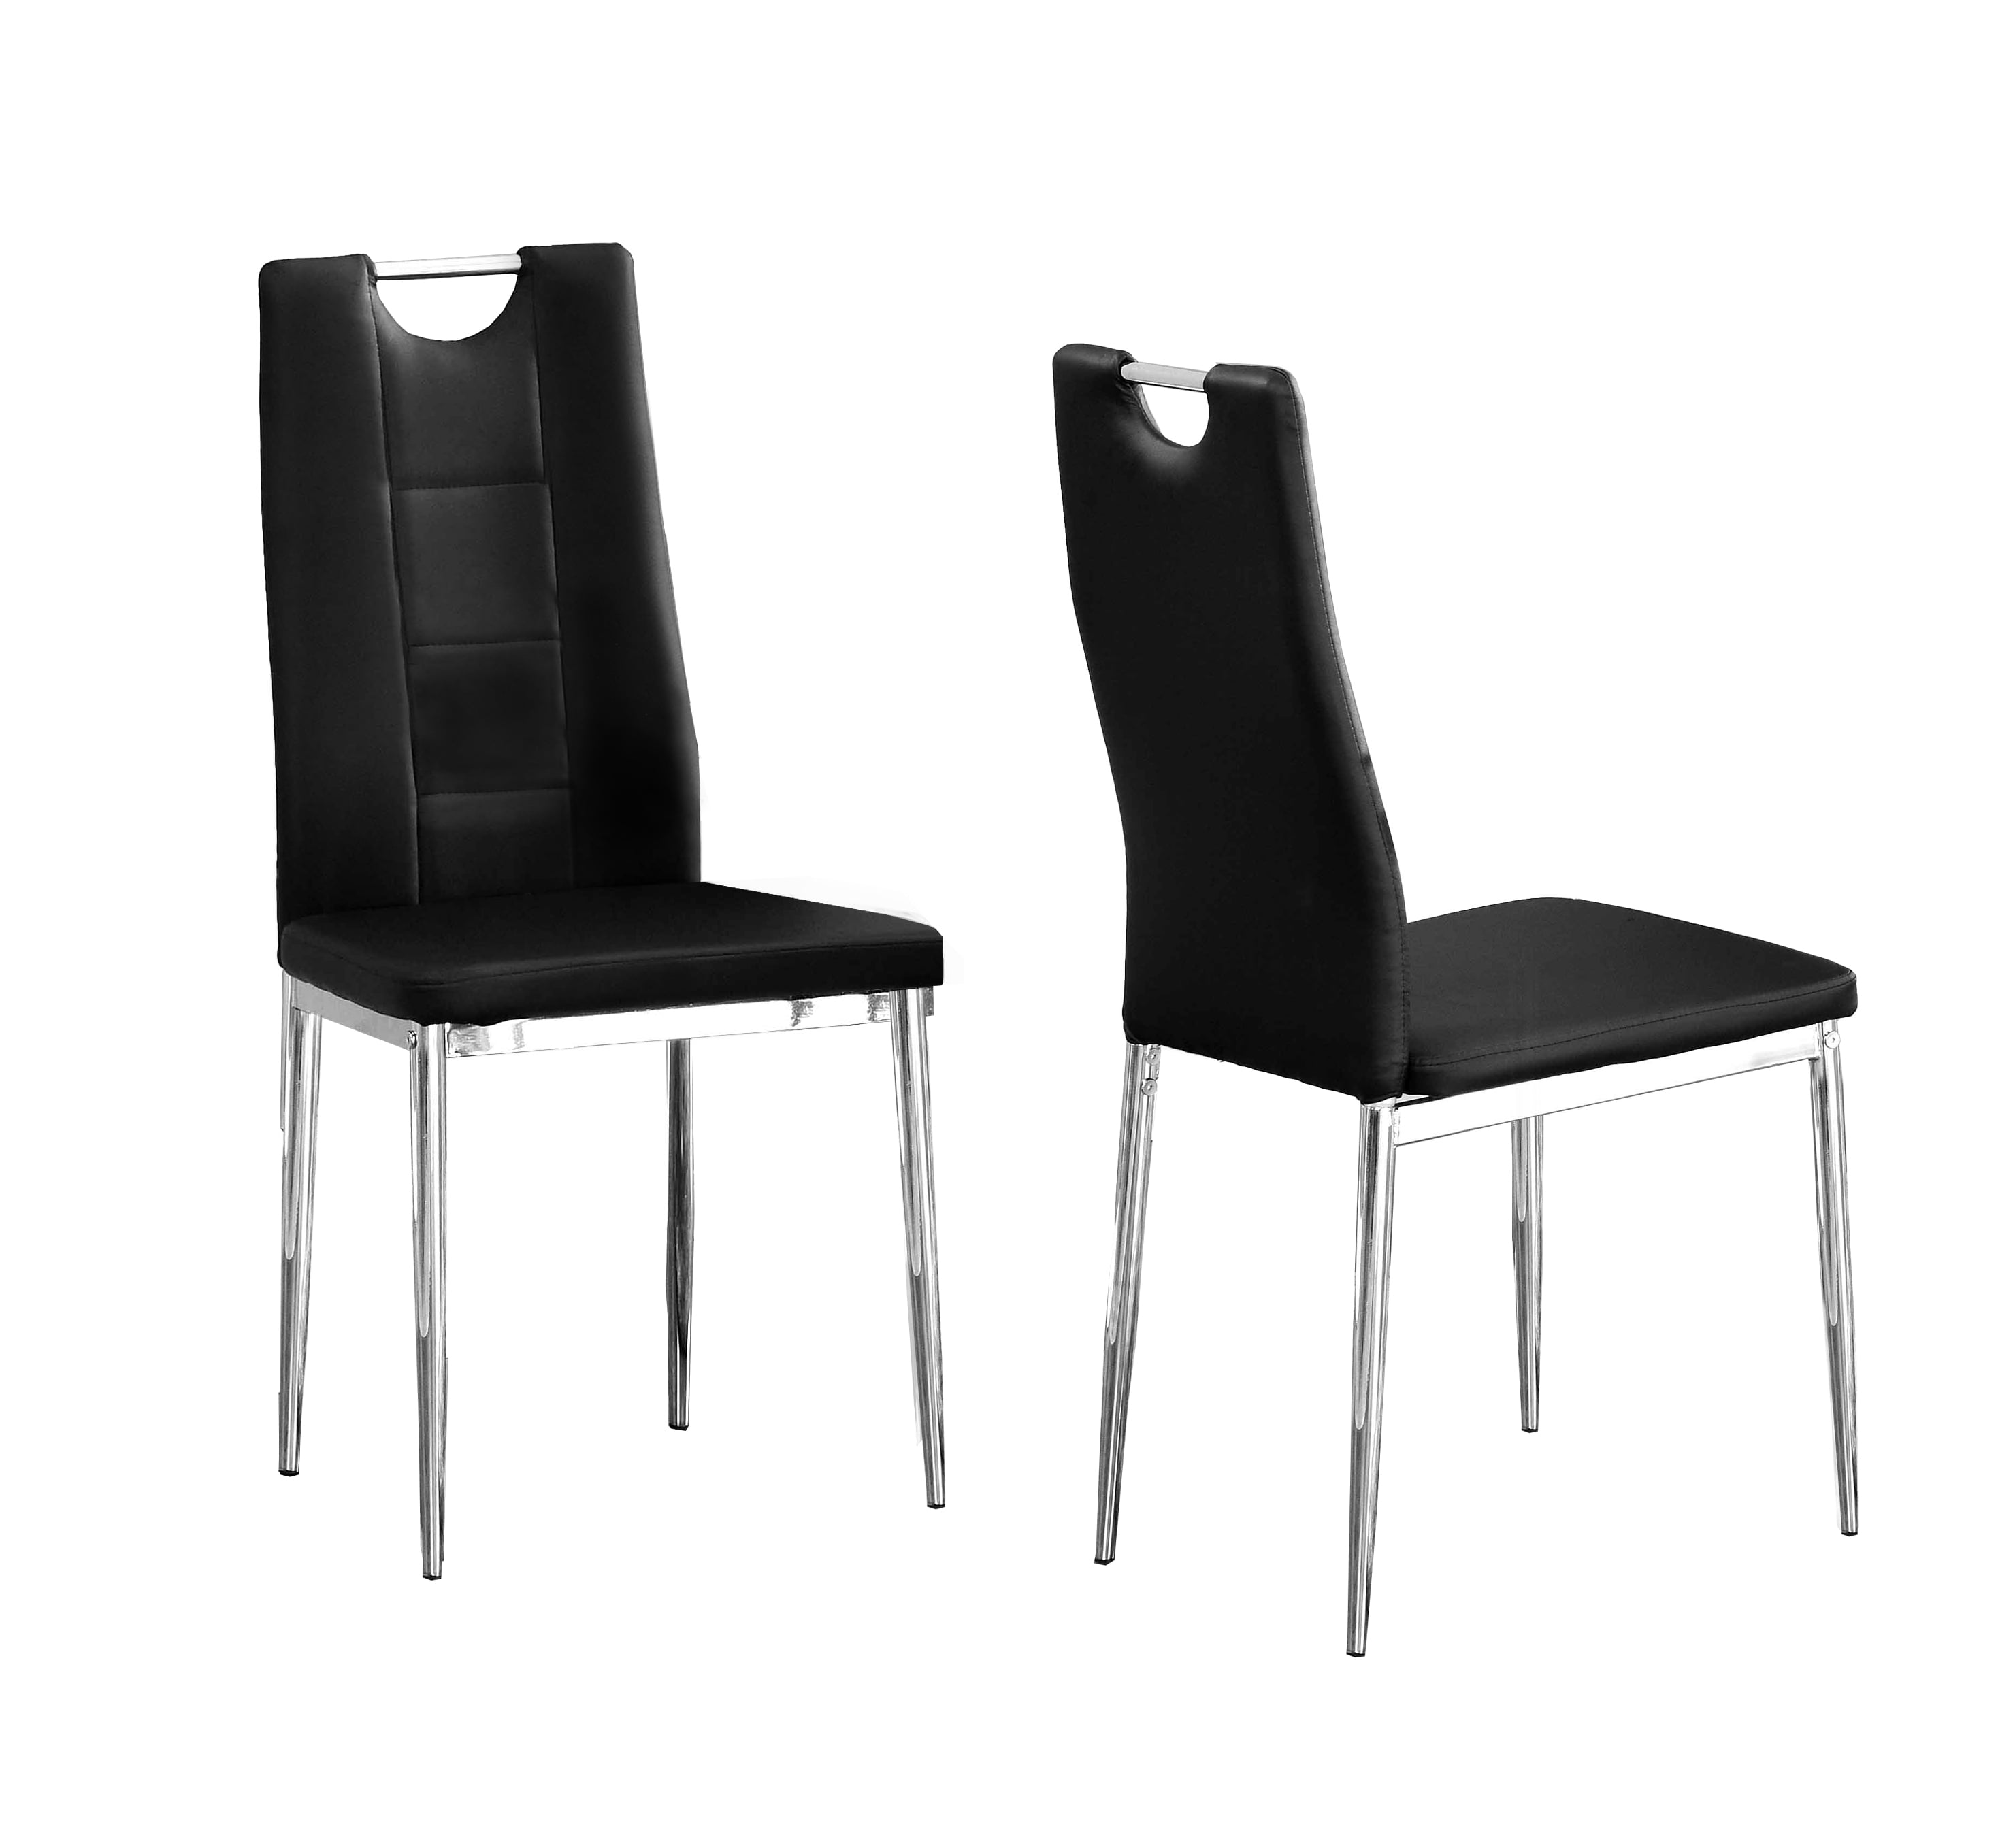 Best Master Furniture Crystal Dining Chairs In Black, Set